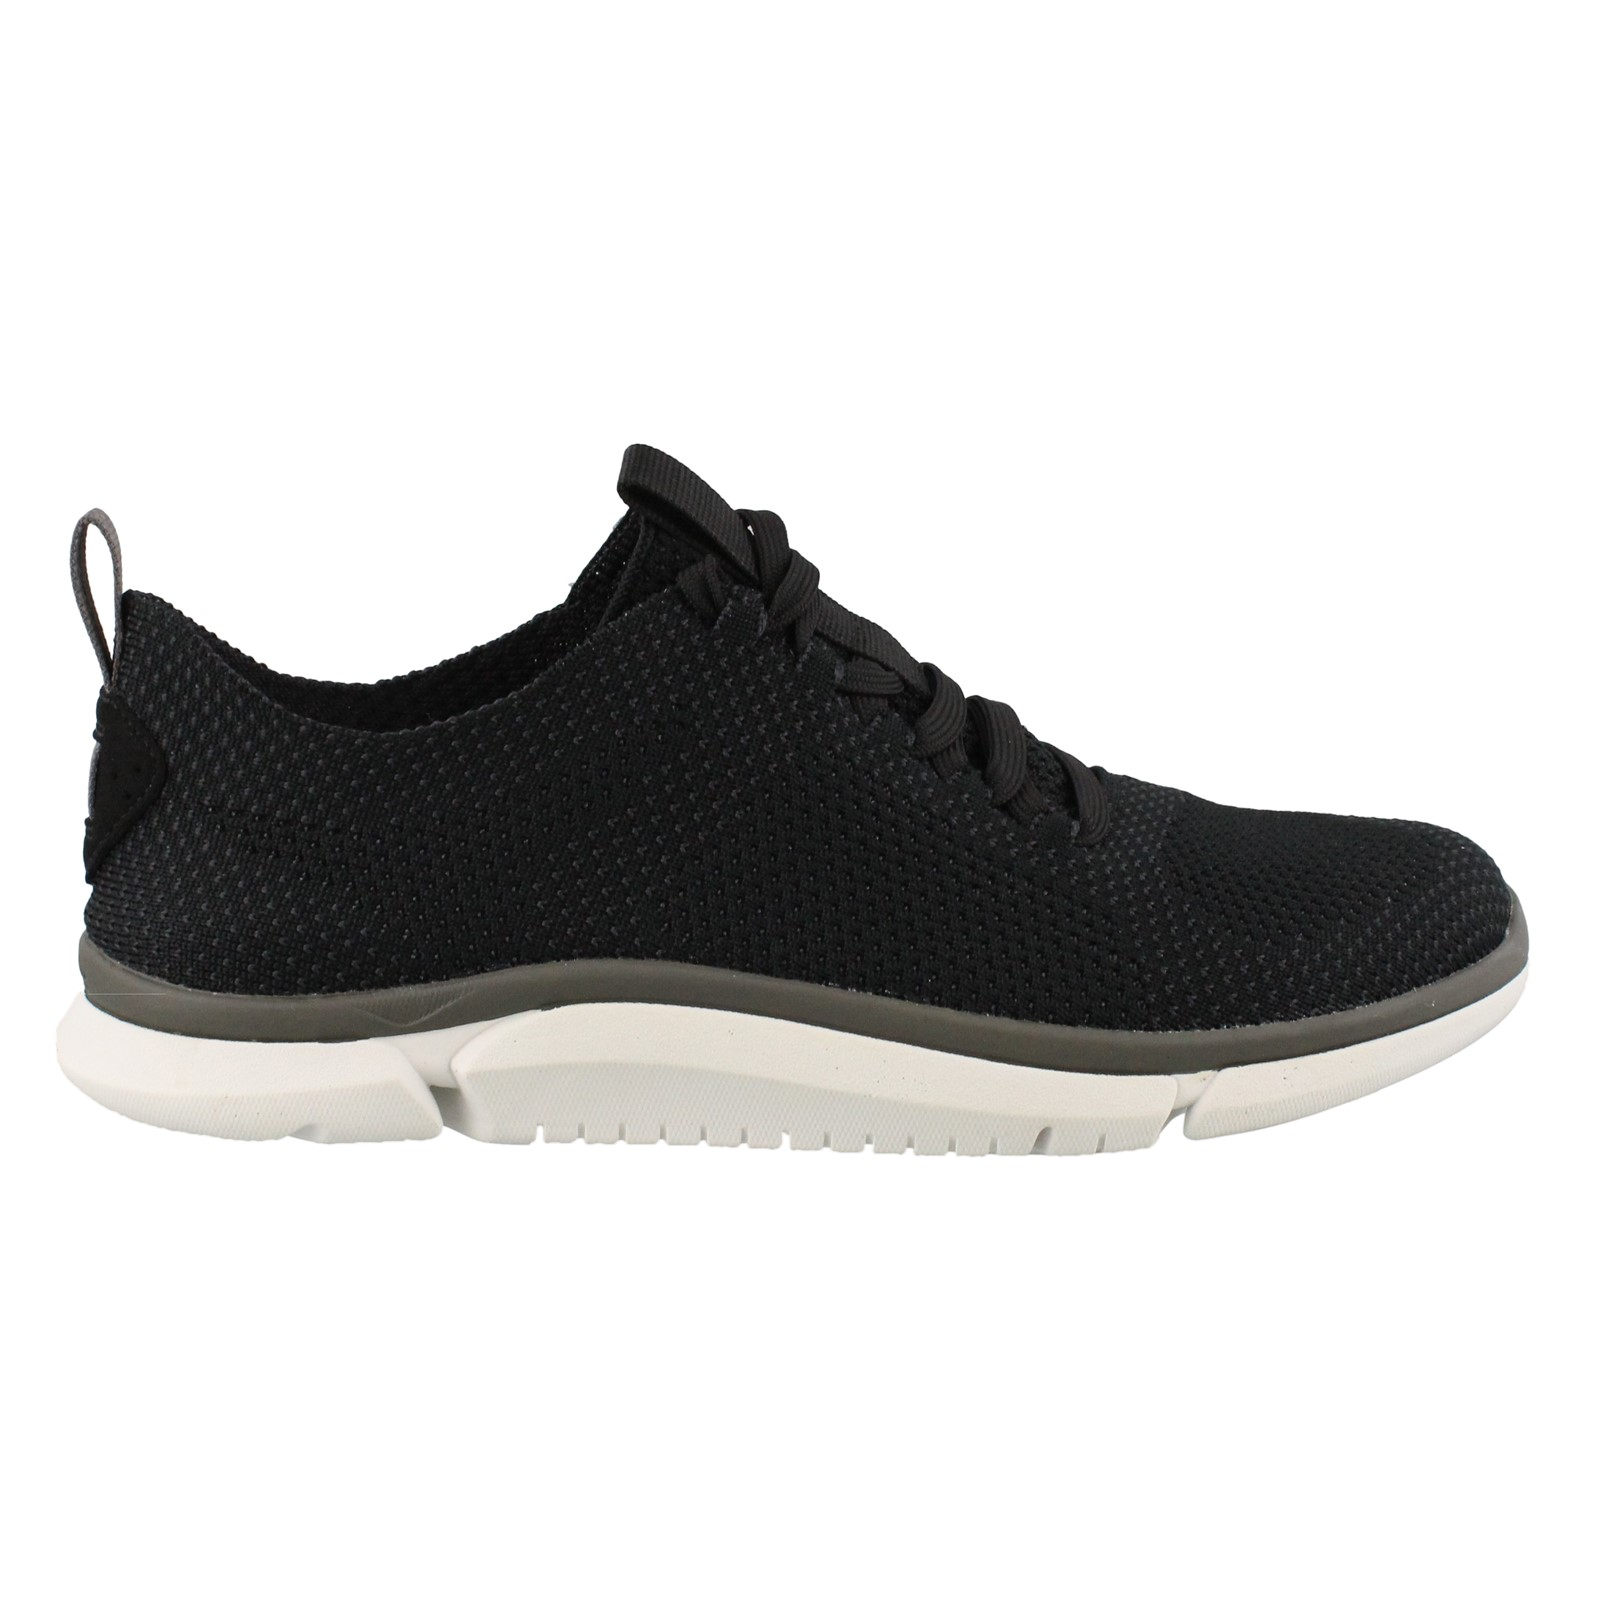 Men's Clarks, Triken Run Sneakers